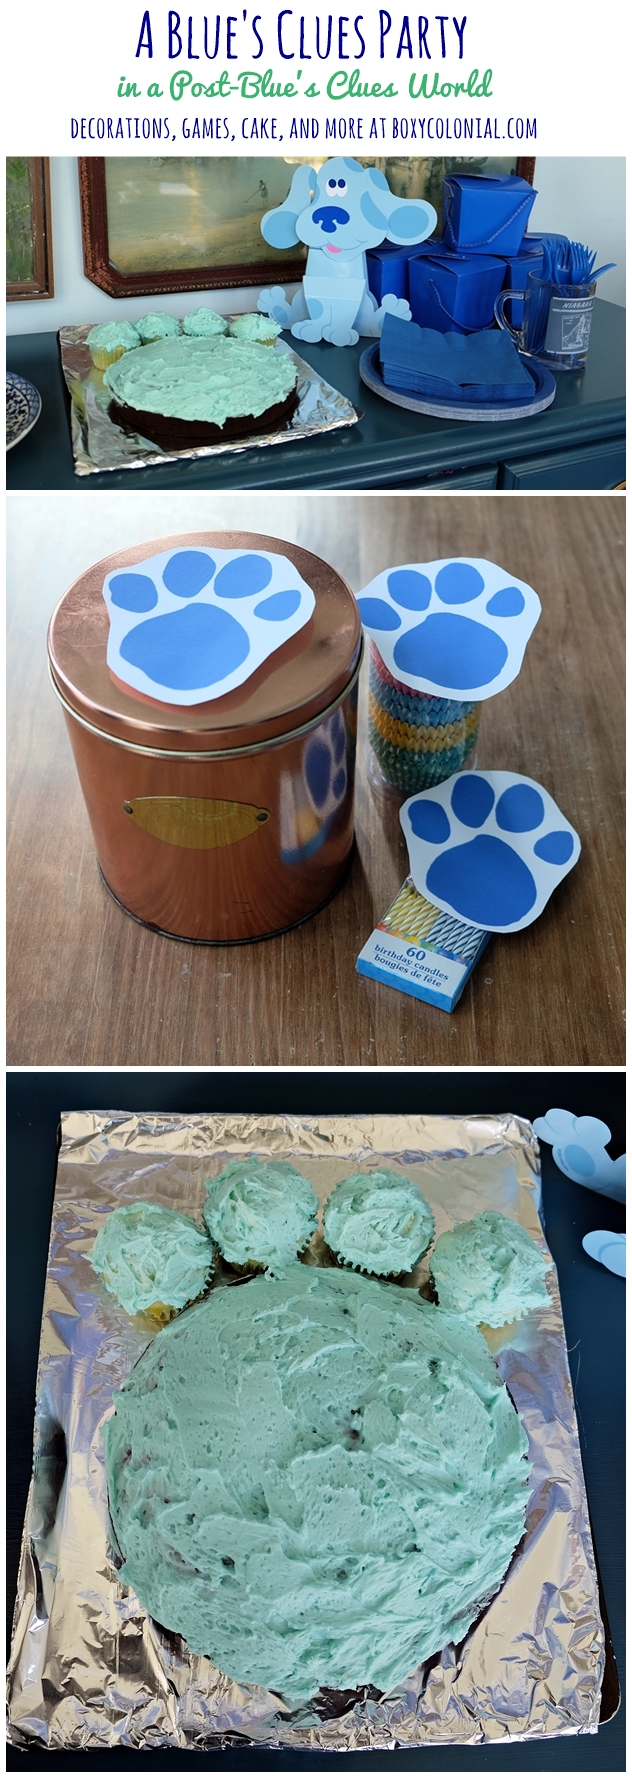 decorations, games, pawprint cake and more: throwing a Blue's Clues party in a post Blue's Clues world